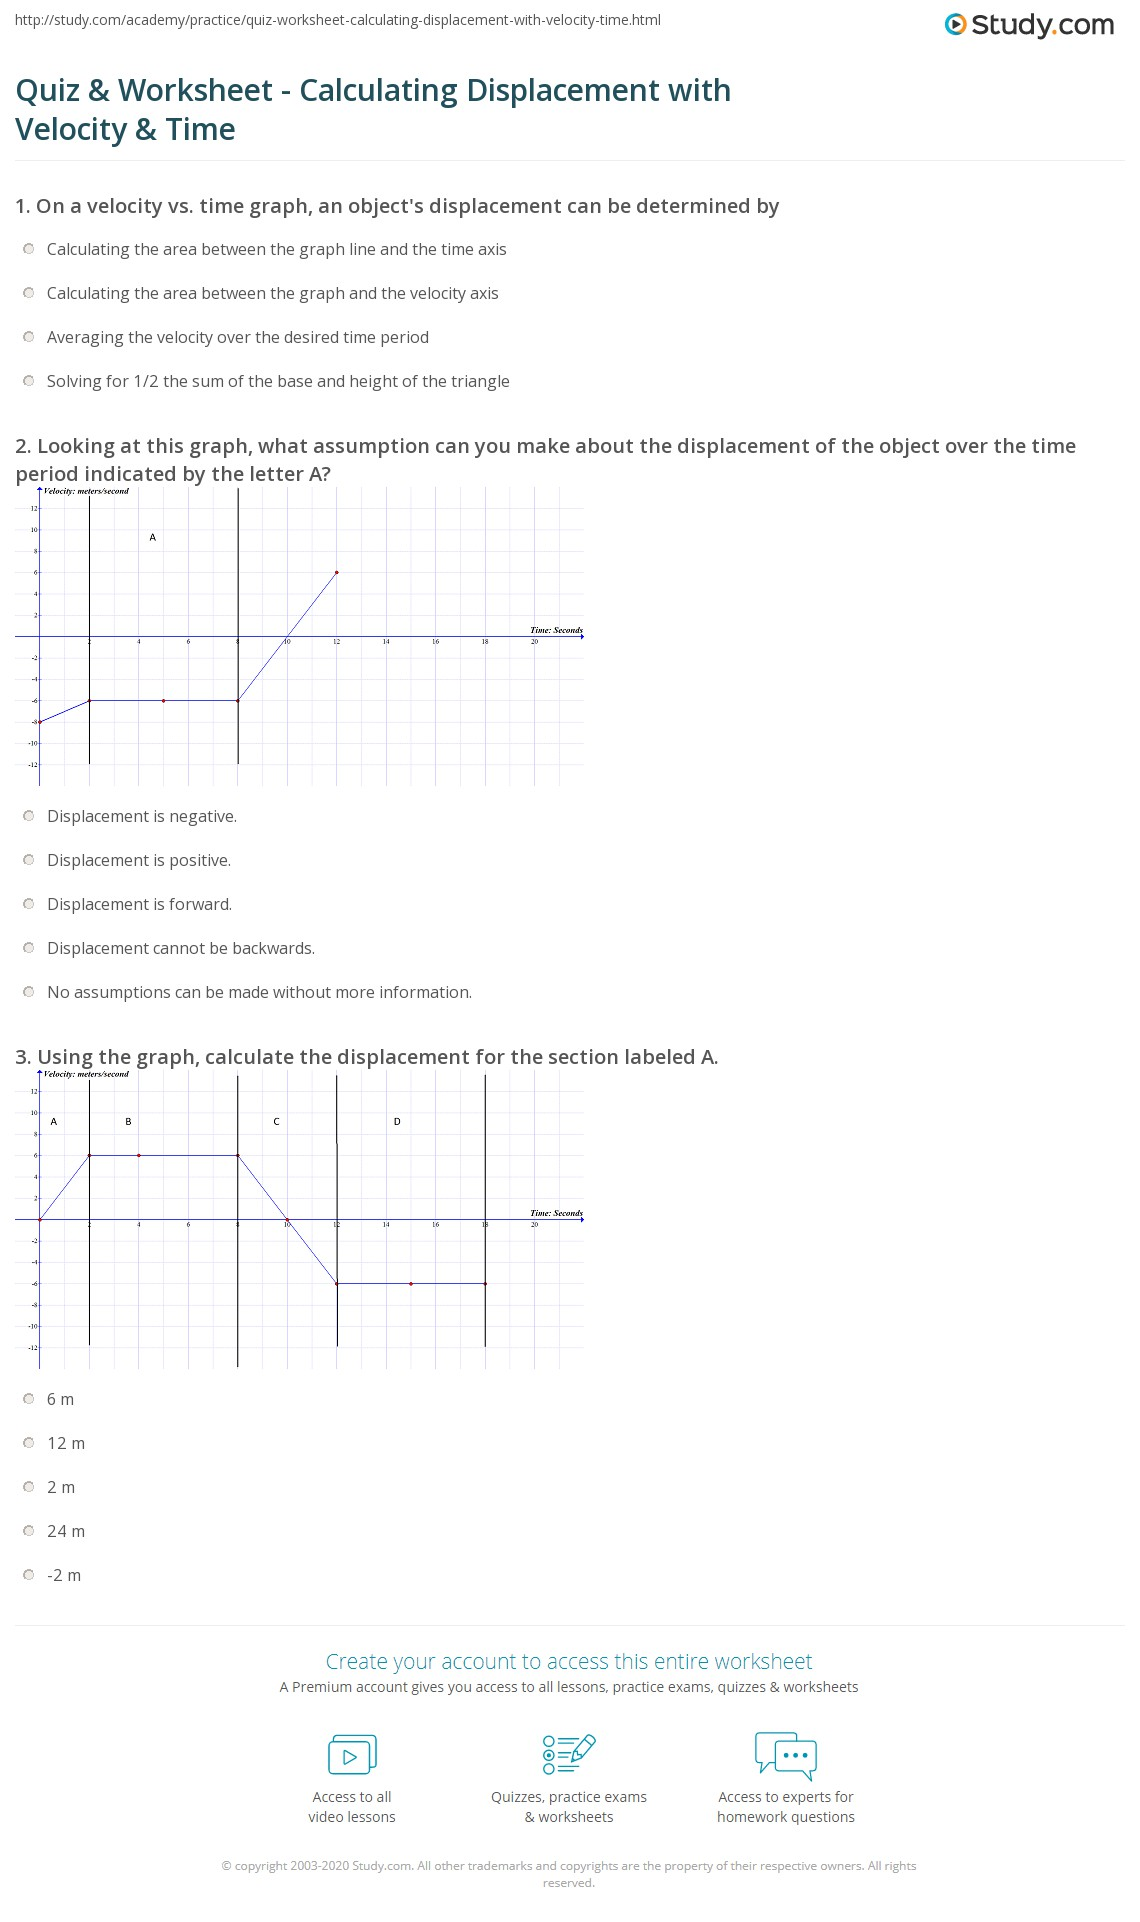 Worksheets Displacement And Velocity Worksheet quiz worksheet calculating displacement with velocity time print vs determining of an object worksheet